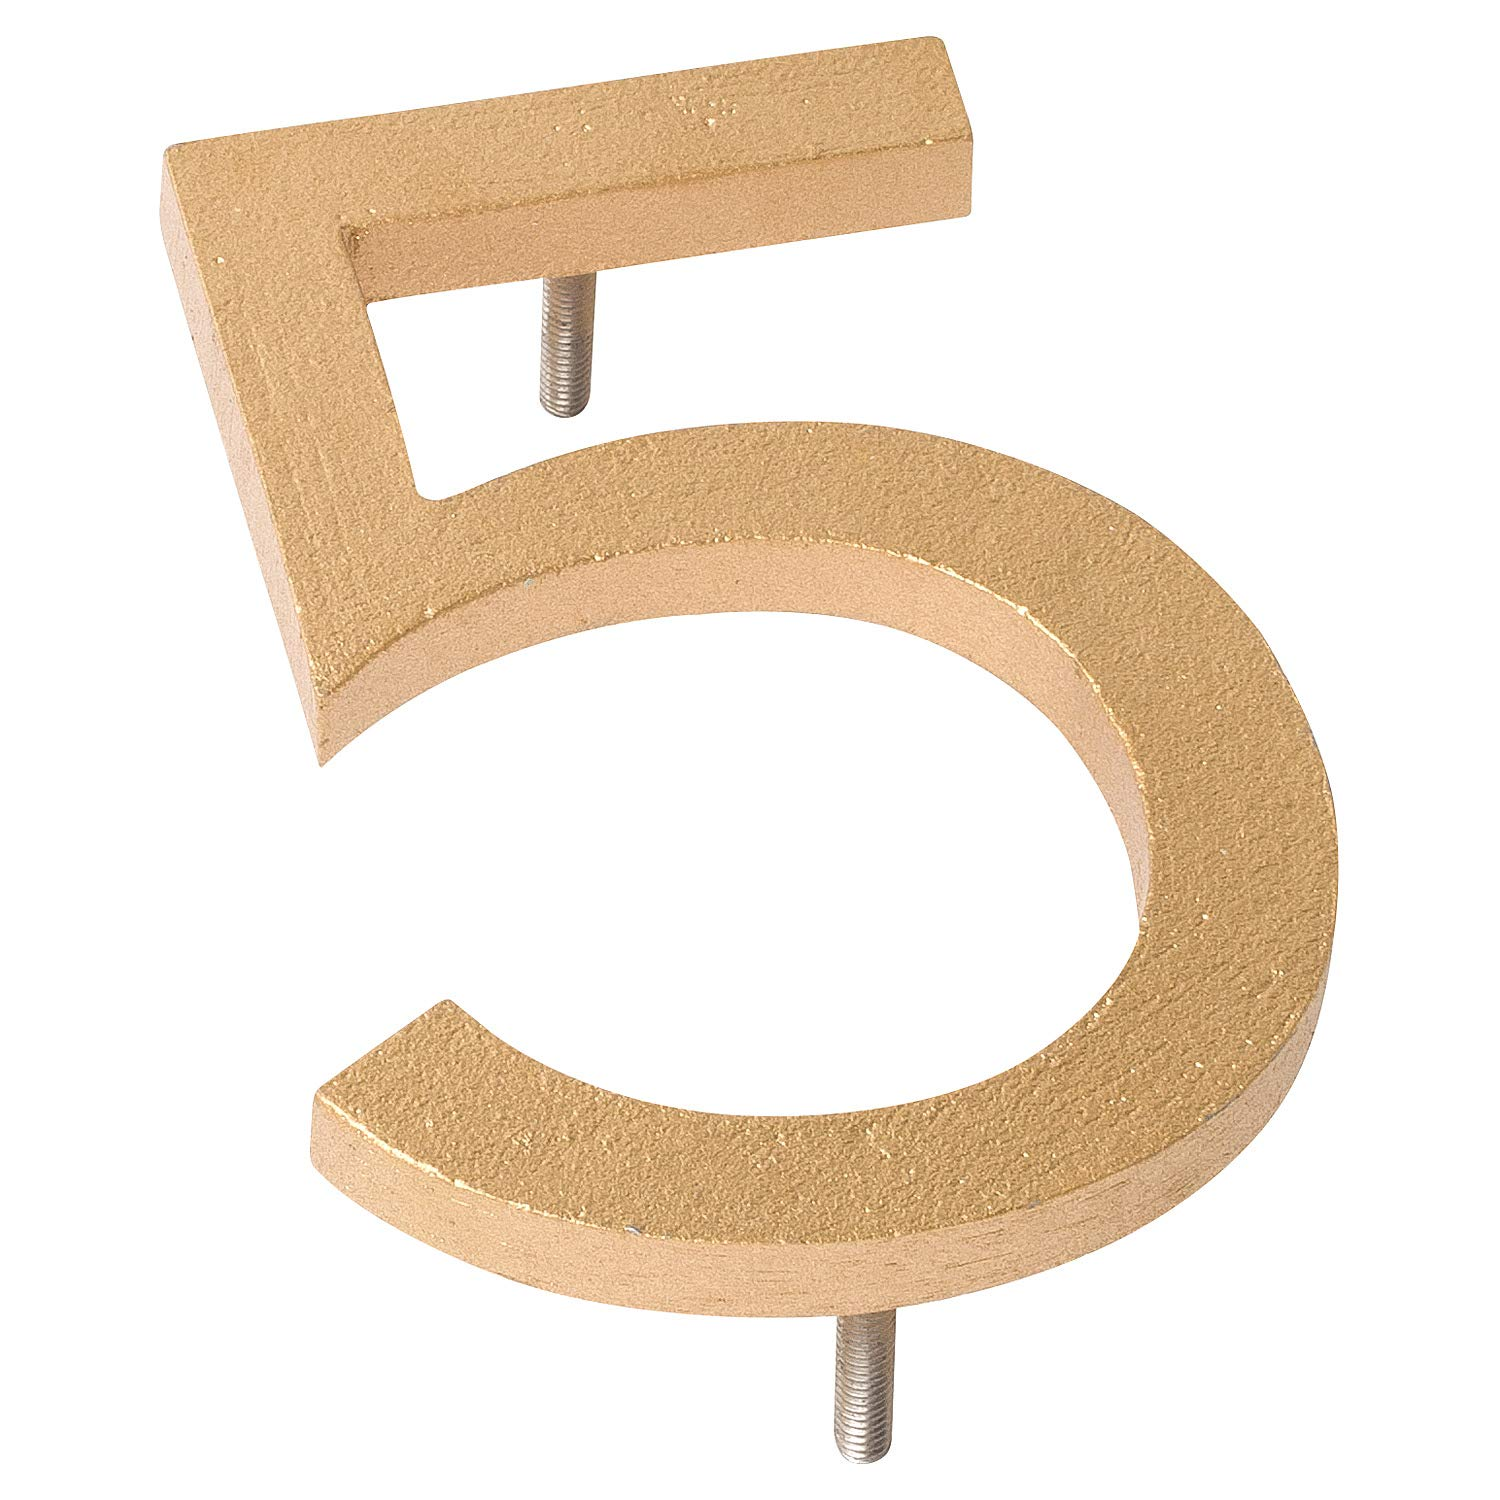 Montague Metal Products MHN-06-7-F-BK1 Floating House Number 6 x 4.31 x 0.31 Black